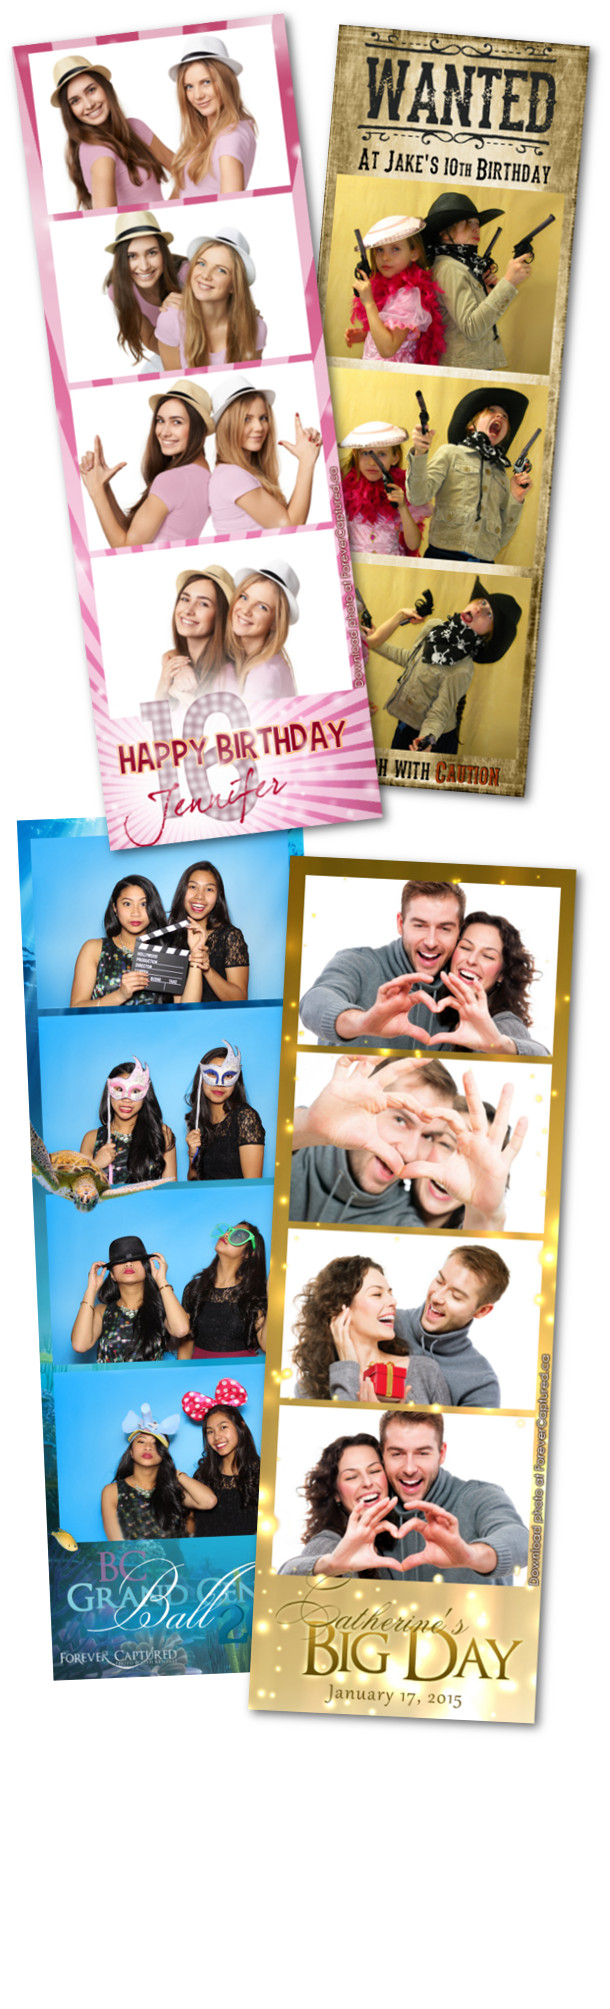 Photobooth rentals in Surrey, BC for weddings, events, and parties.